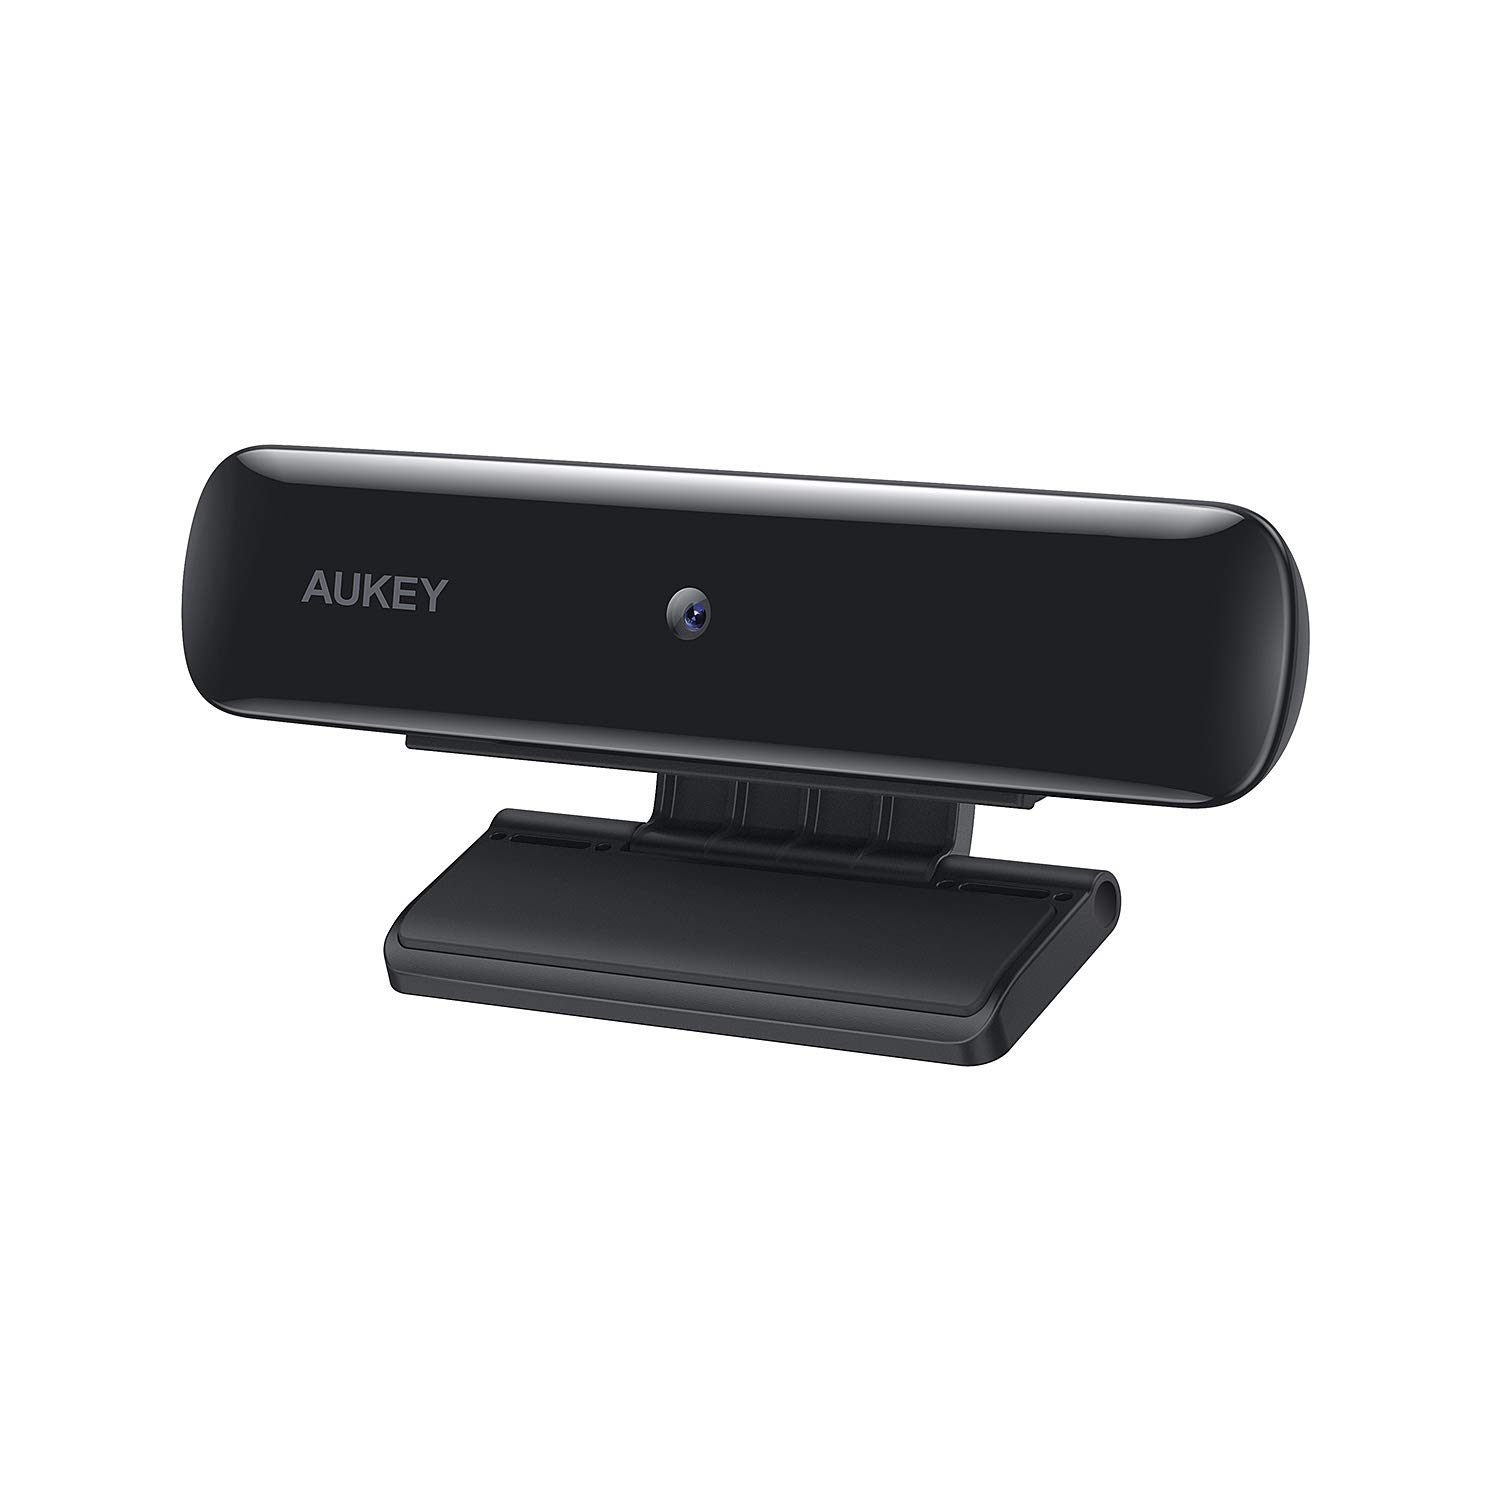 AUKEY Webcam 1080P Full HD con Microfono Stereo